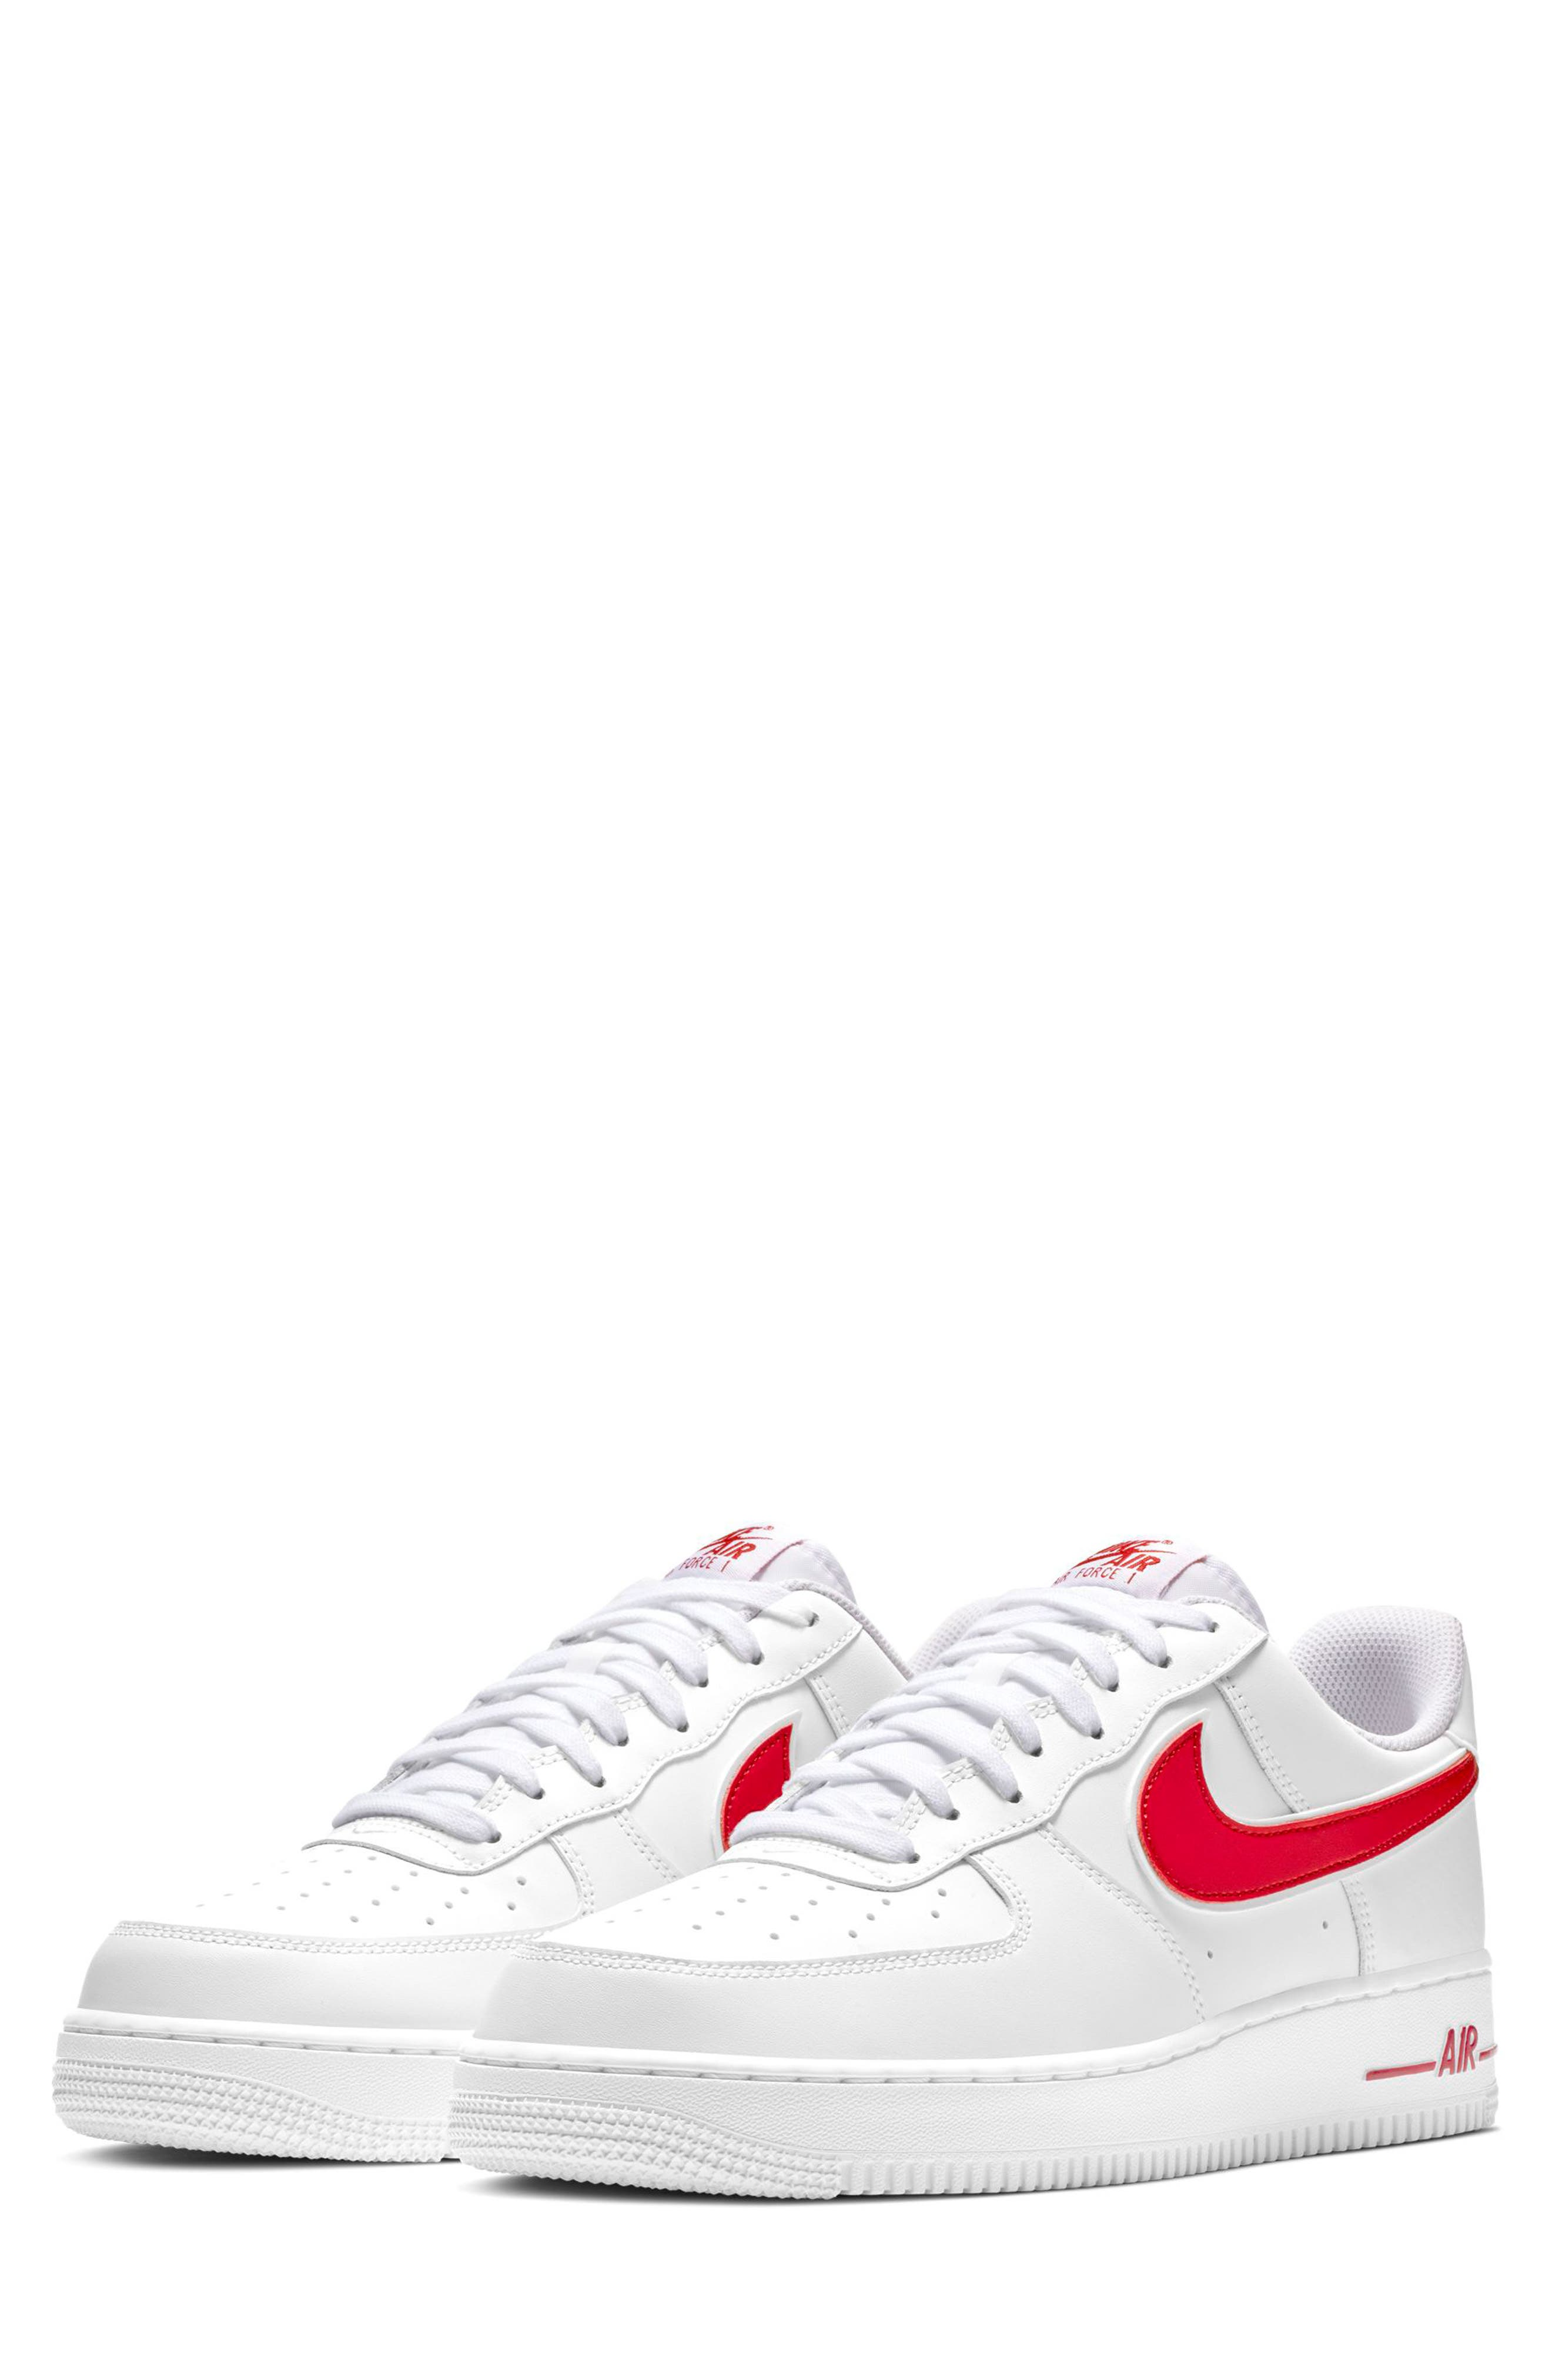 NIKE Air Force 1 '07 3 Sneaker, Main, color, WHITE/ GYM RED